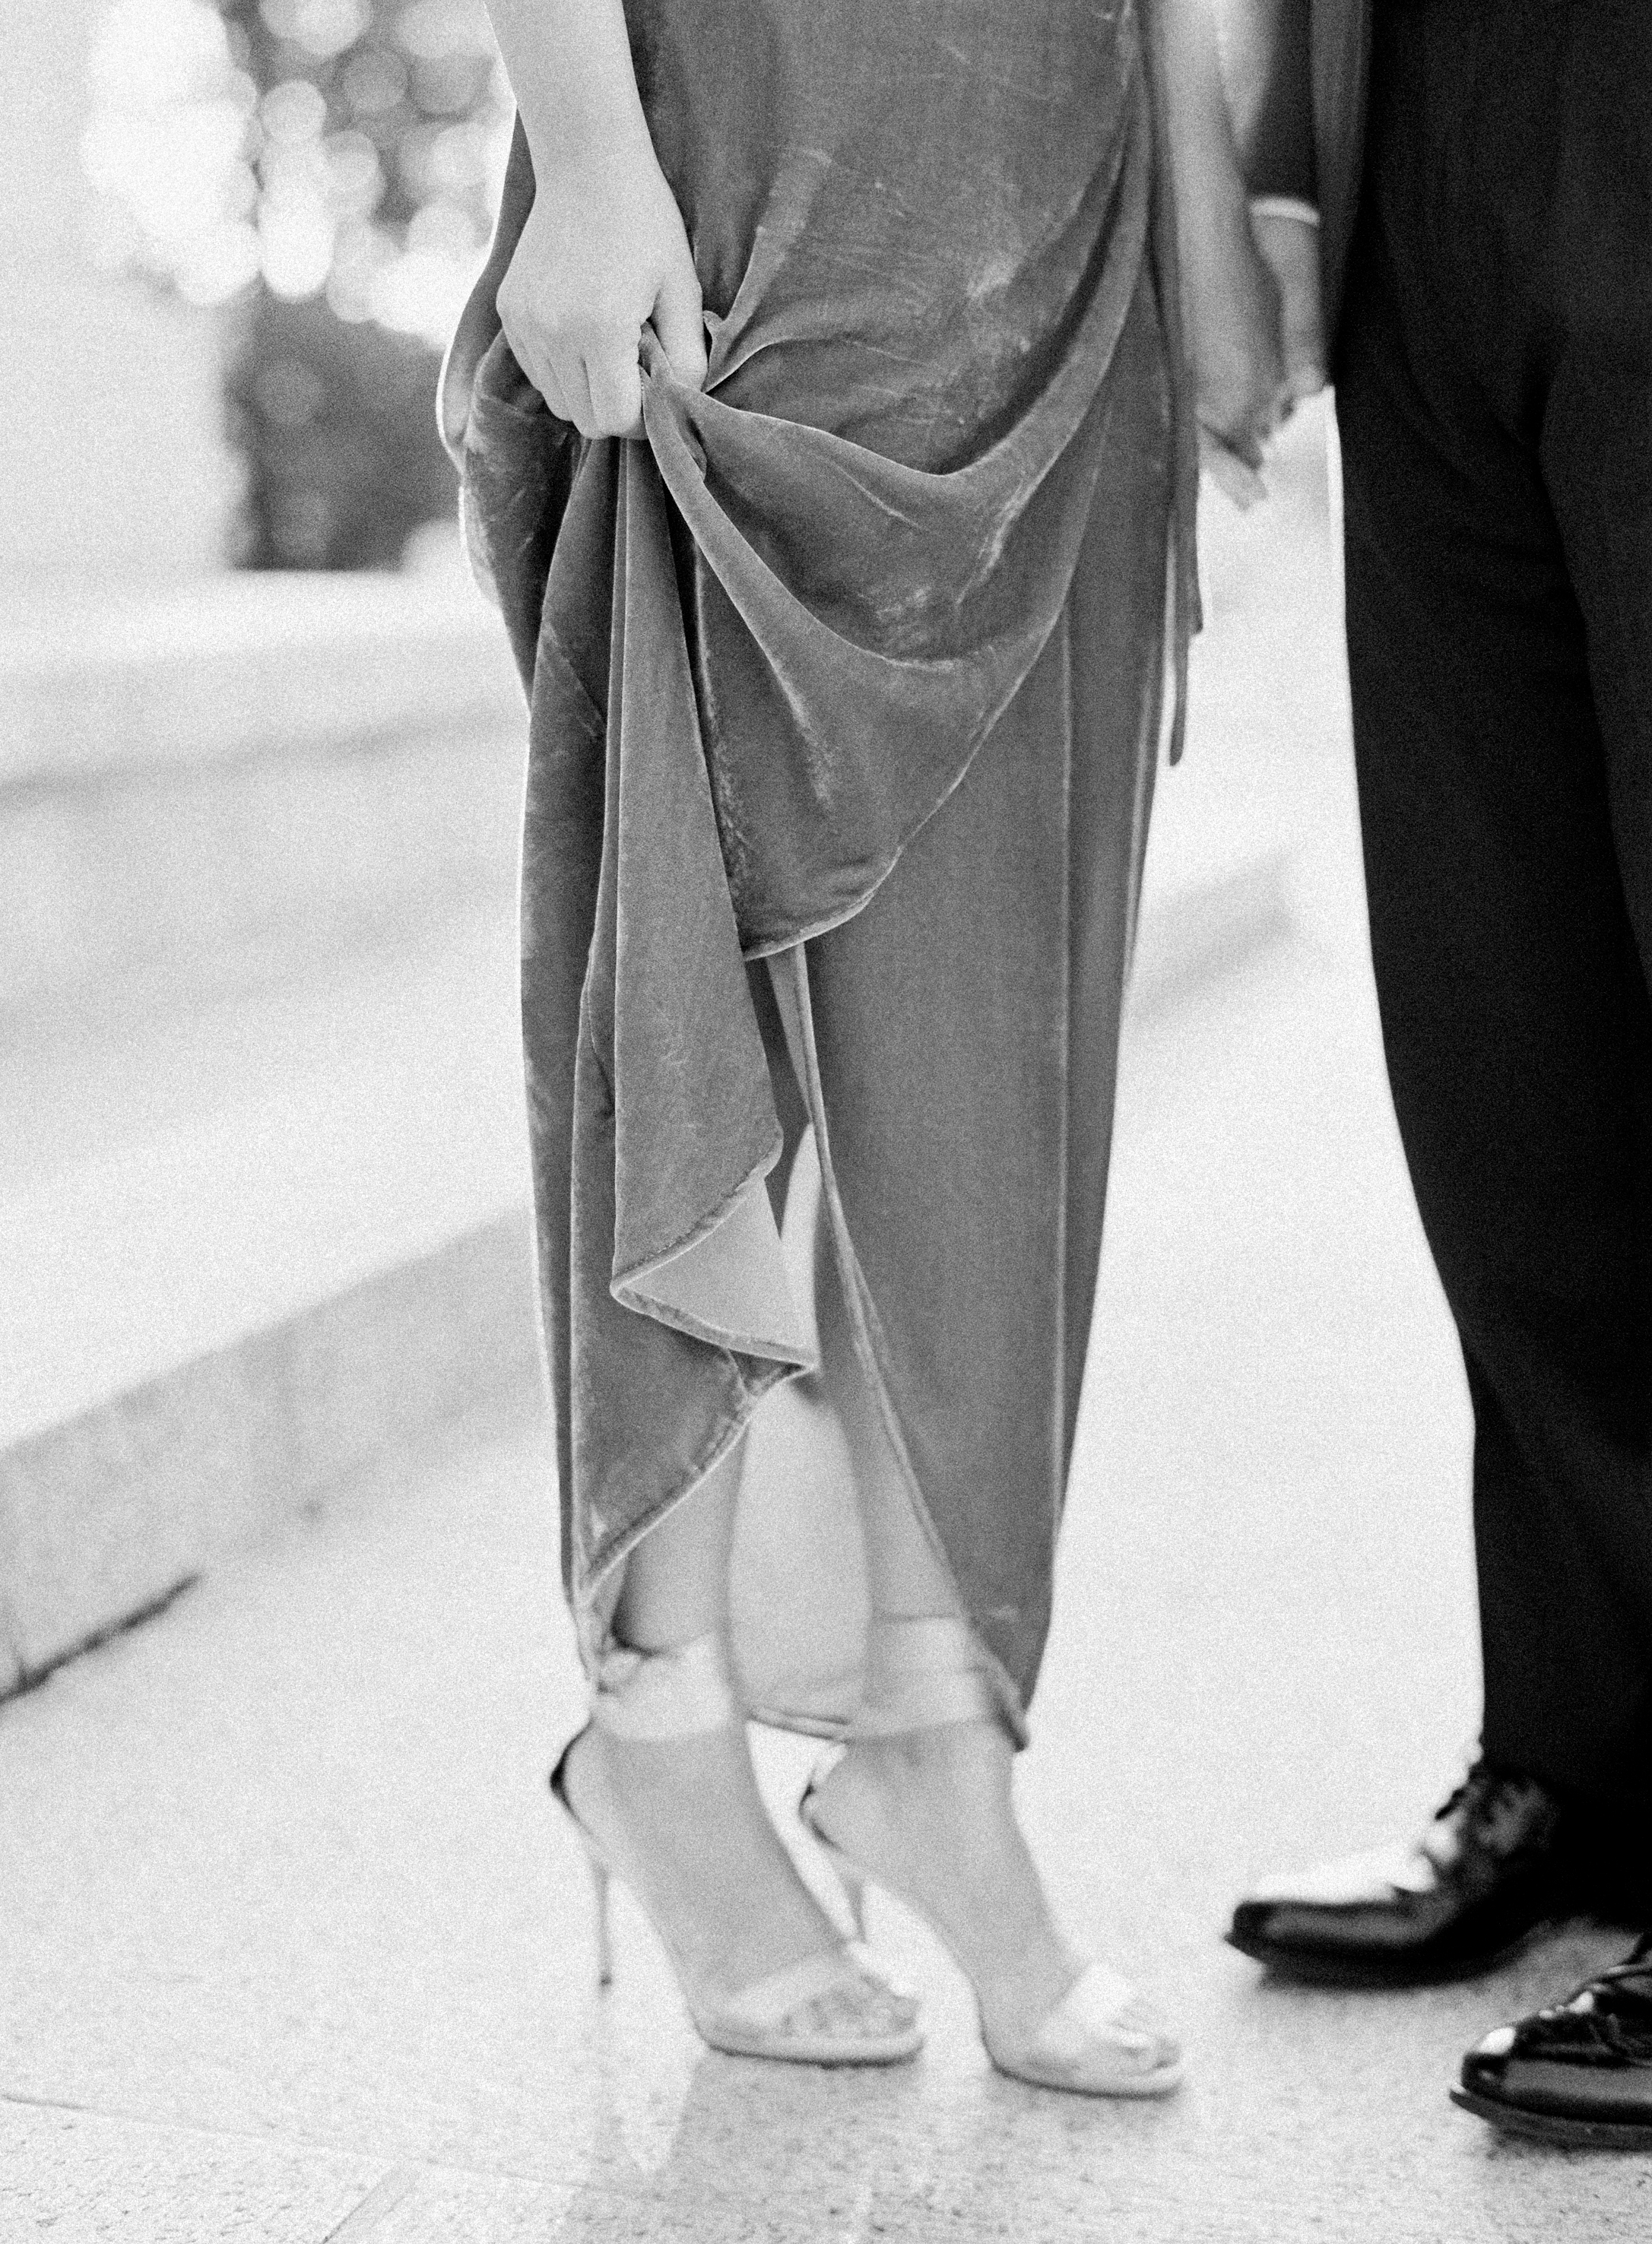 Meghan Mehan Photography - New York City Film Wedding Photographer | New York | San Francisco | Napa | Sonoma | Los Angeles 040.jpg